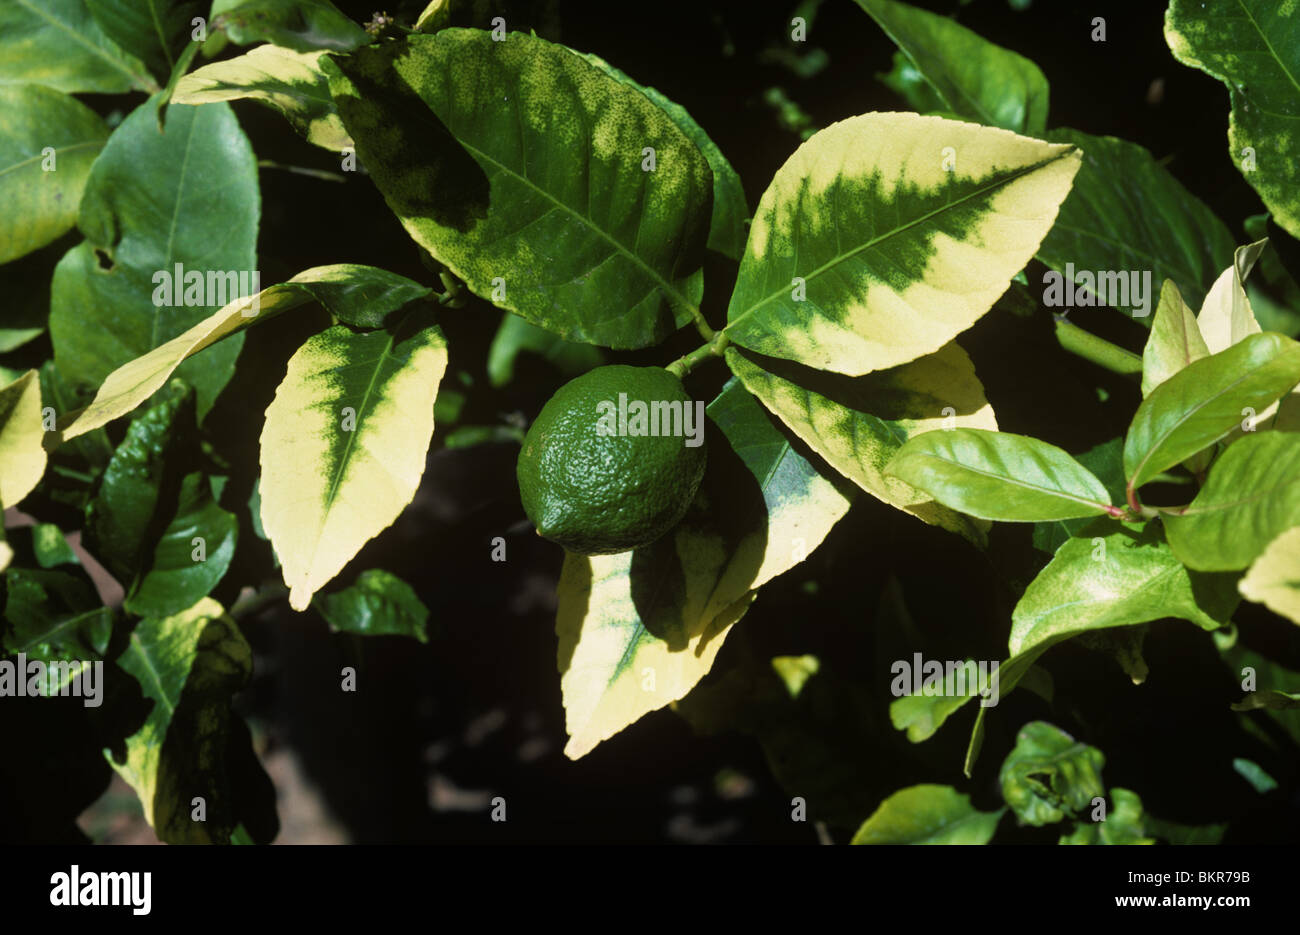 Lemon leaves showing signs of severe calcium deficiency - Stock Image